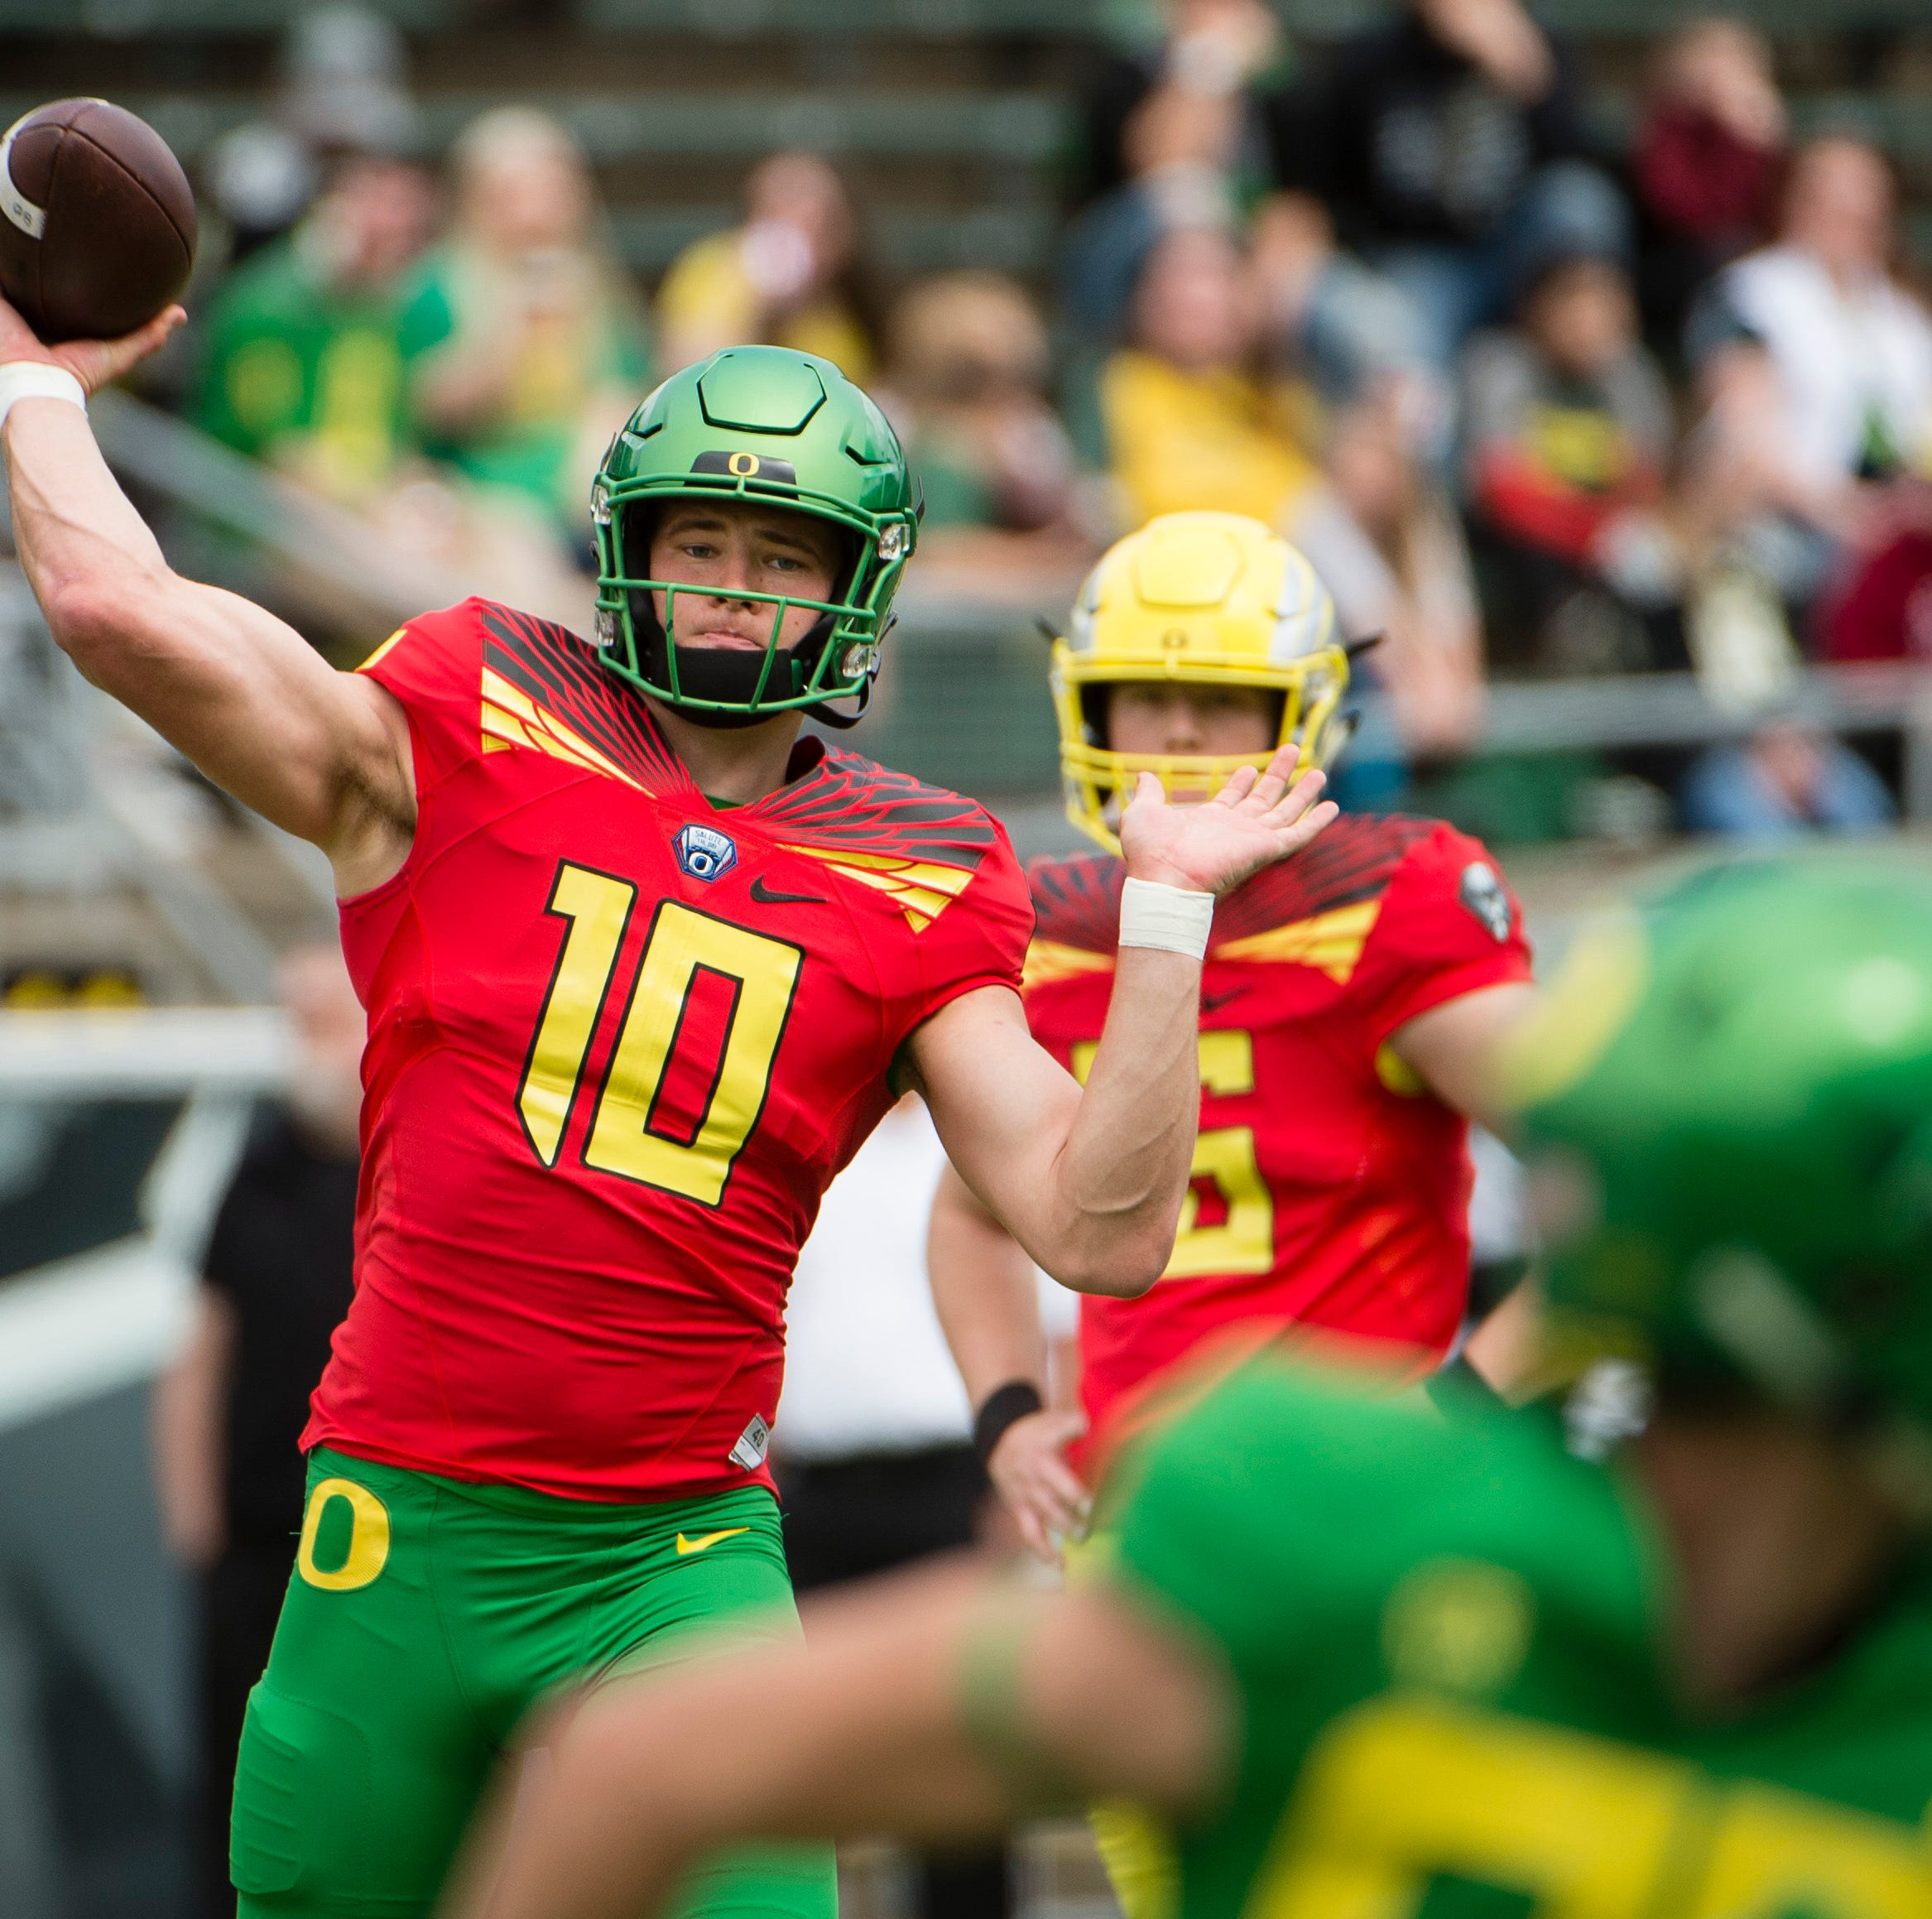 Oregon Ducks: Quarterbacks look strong in spring game